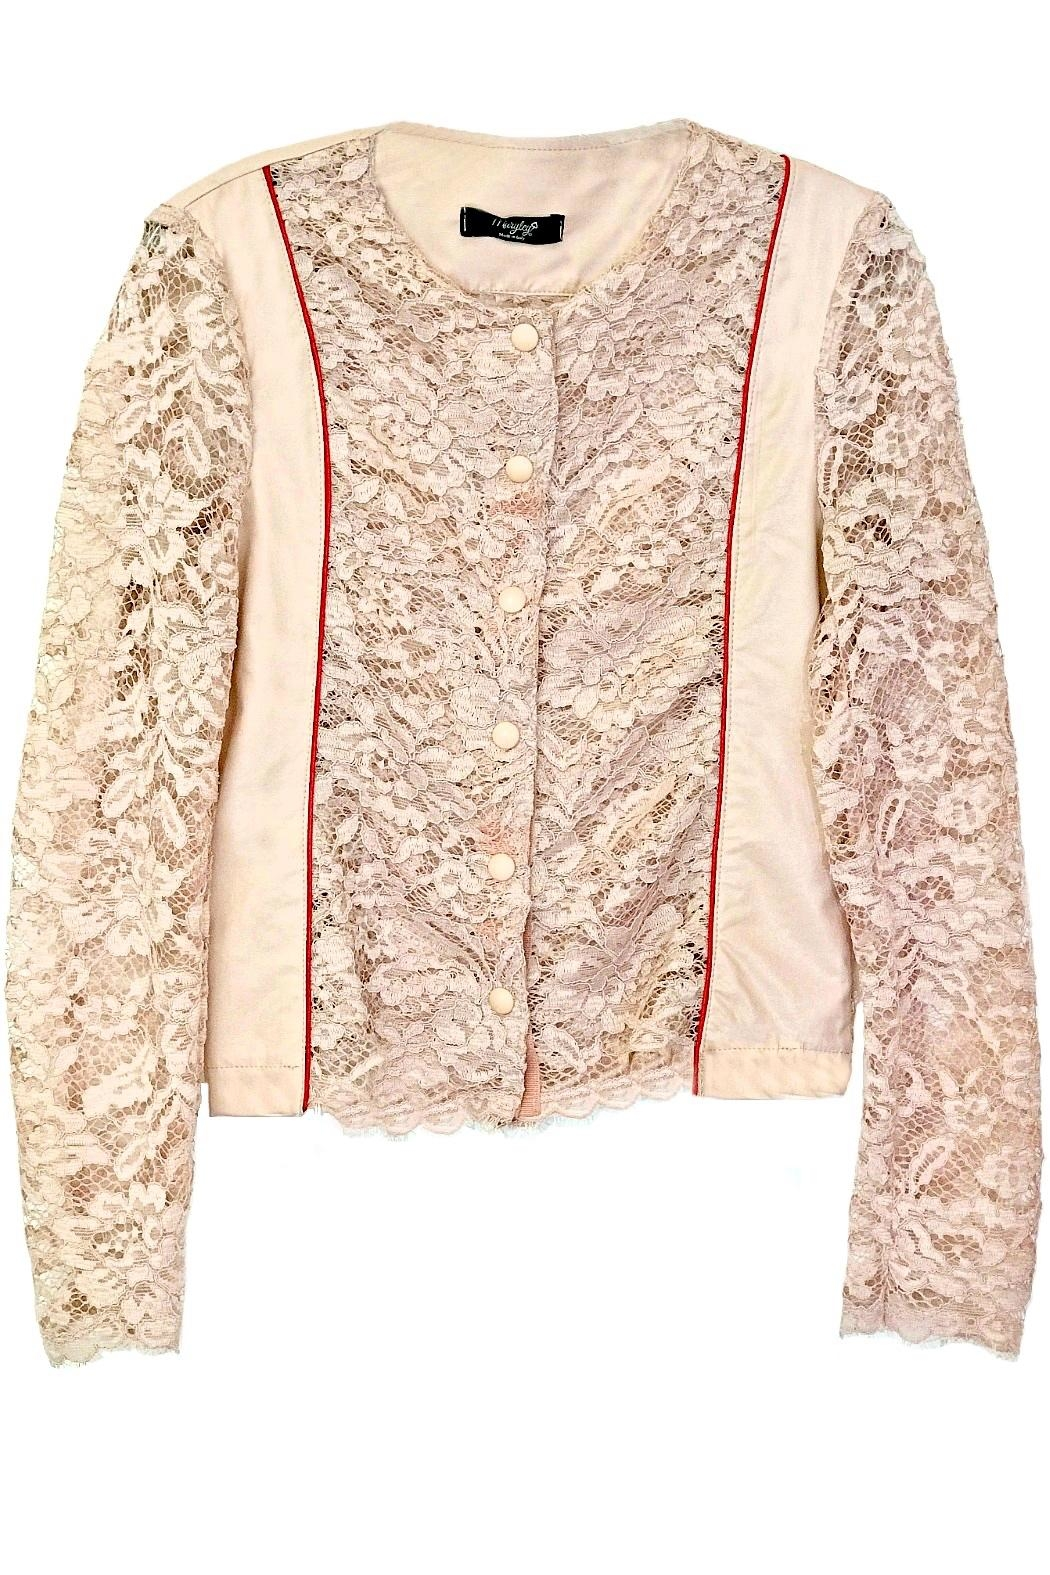 Maryley Pink Lace Jacket - Main Image